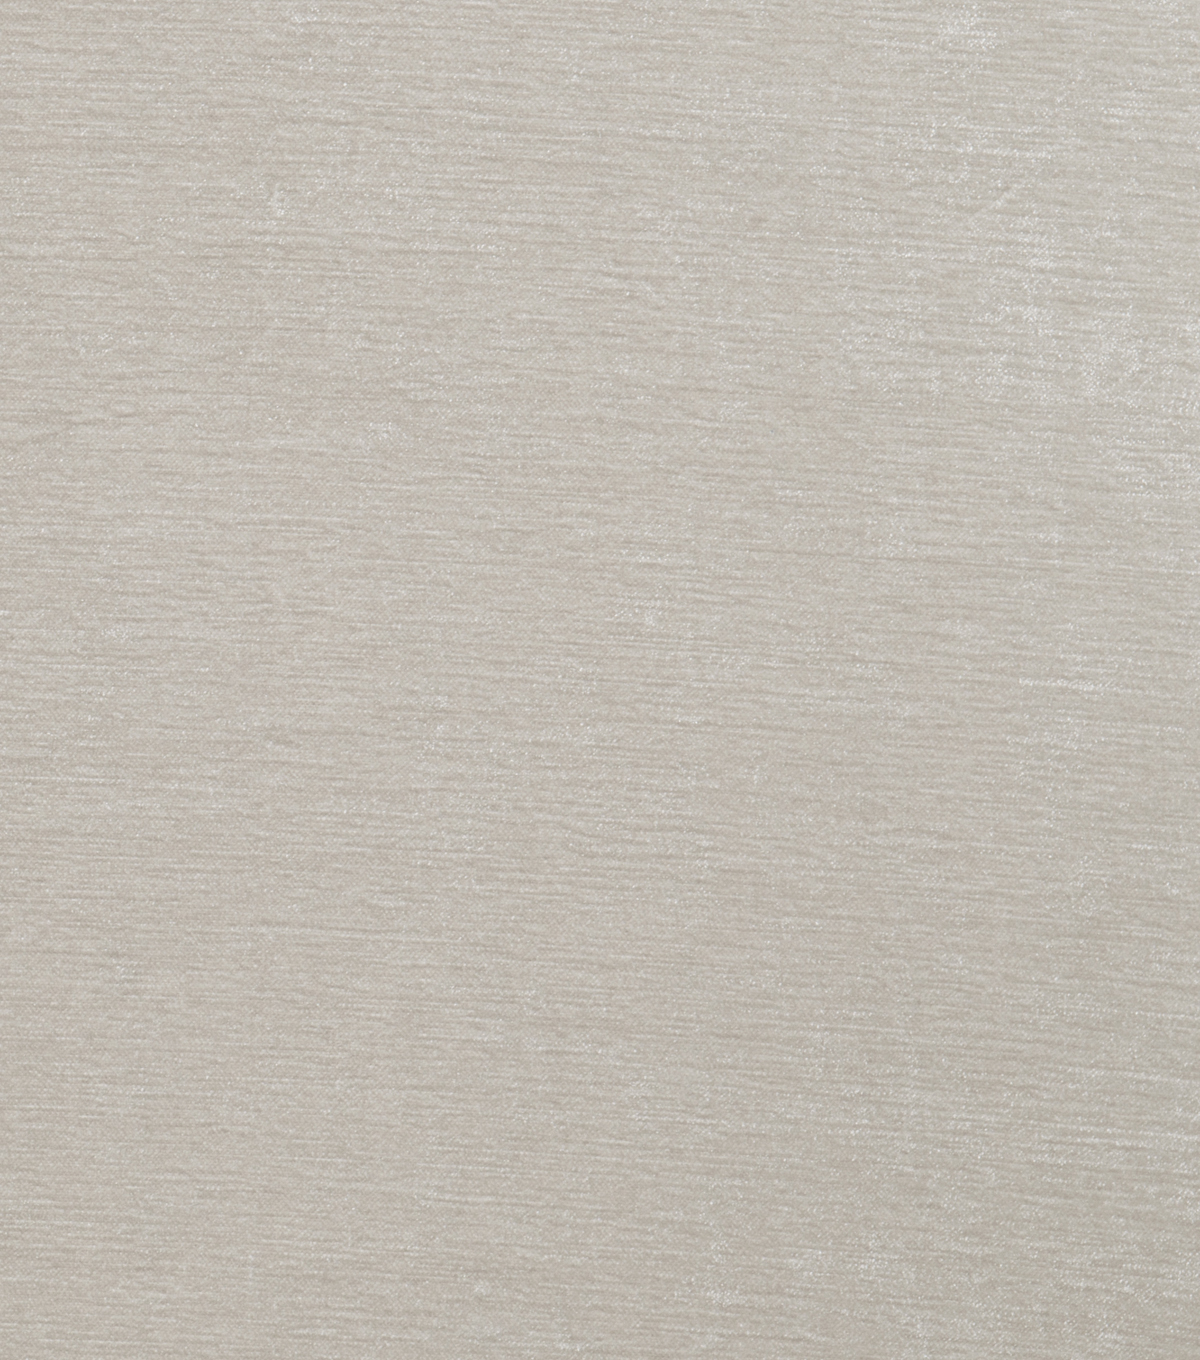 Home Decor 8x8 Fabric Swatch-Eaton Square Lamode Gravel